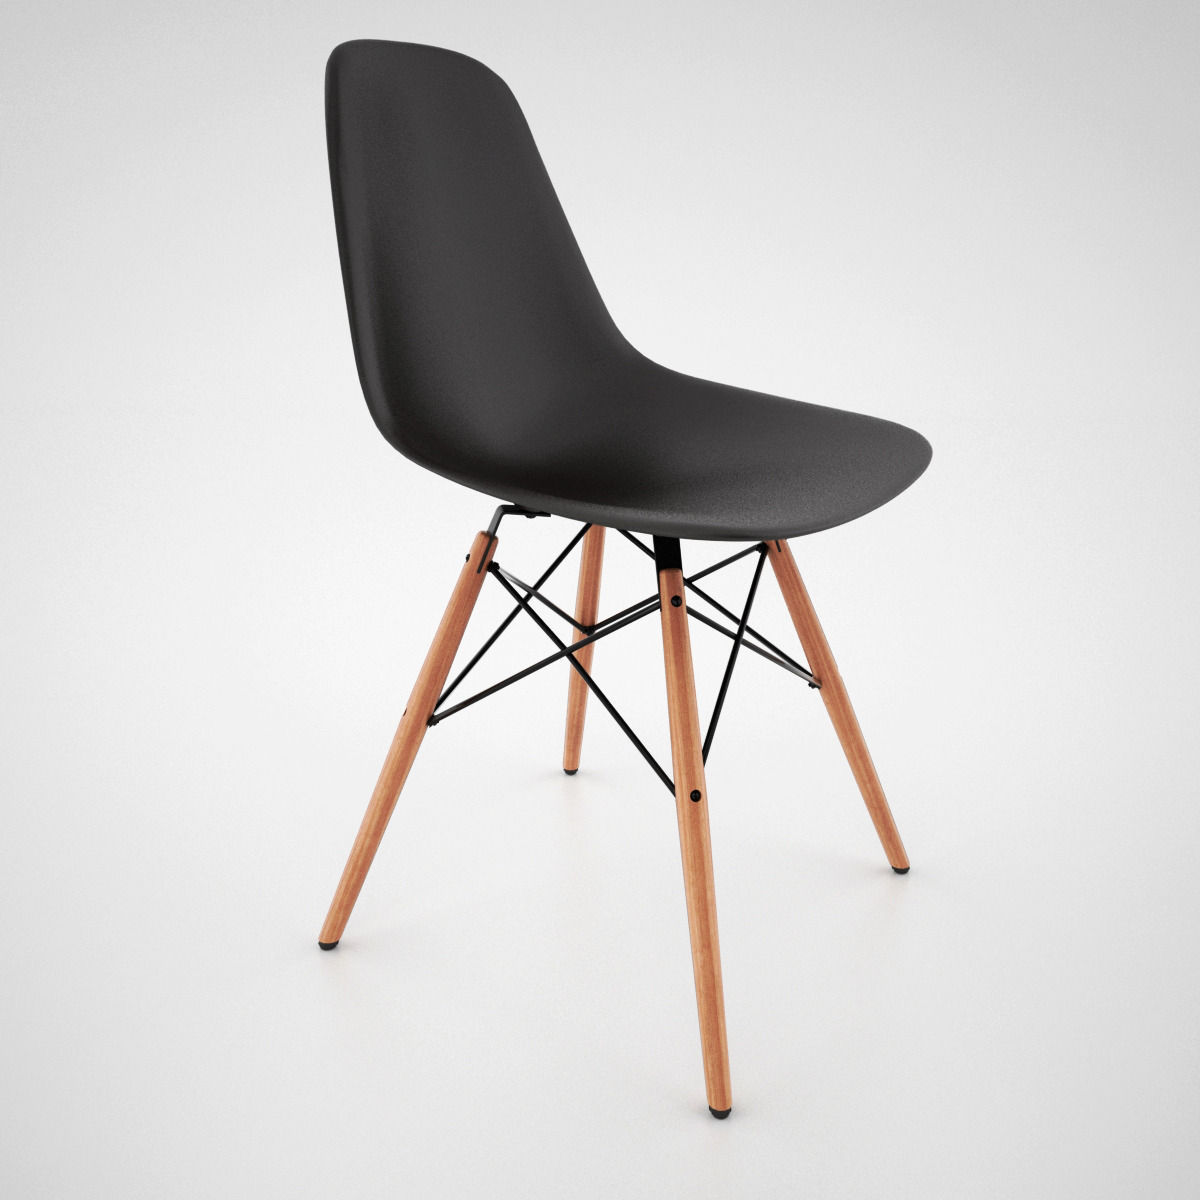 vitra dsw chair and eames table 3d model max obj fbx mat. Black Bedroom Furniture Sets. Home Design Ideas